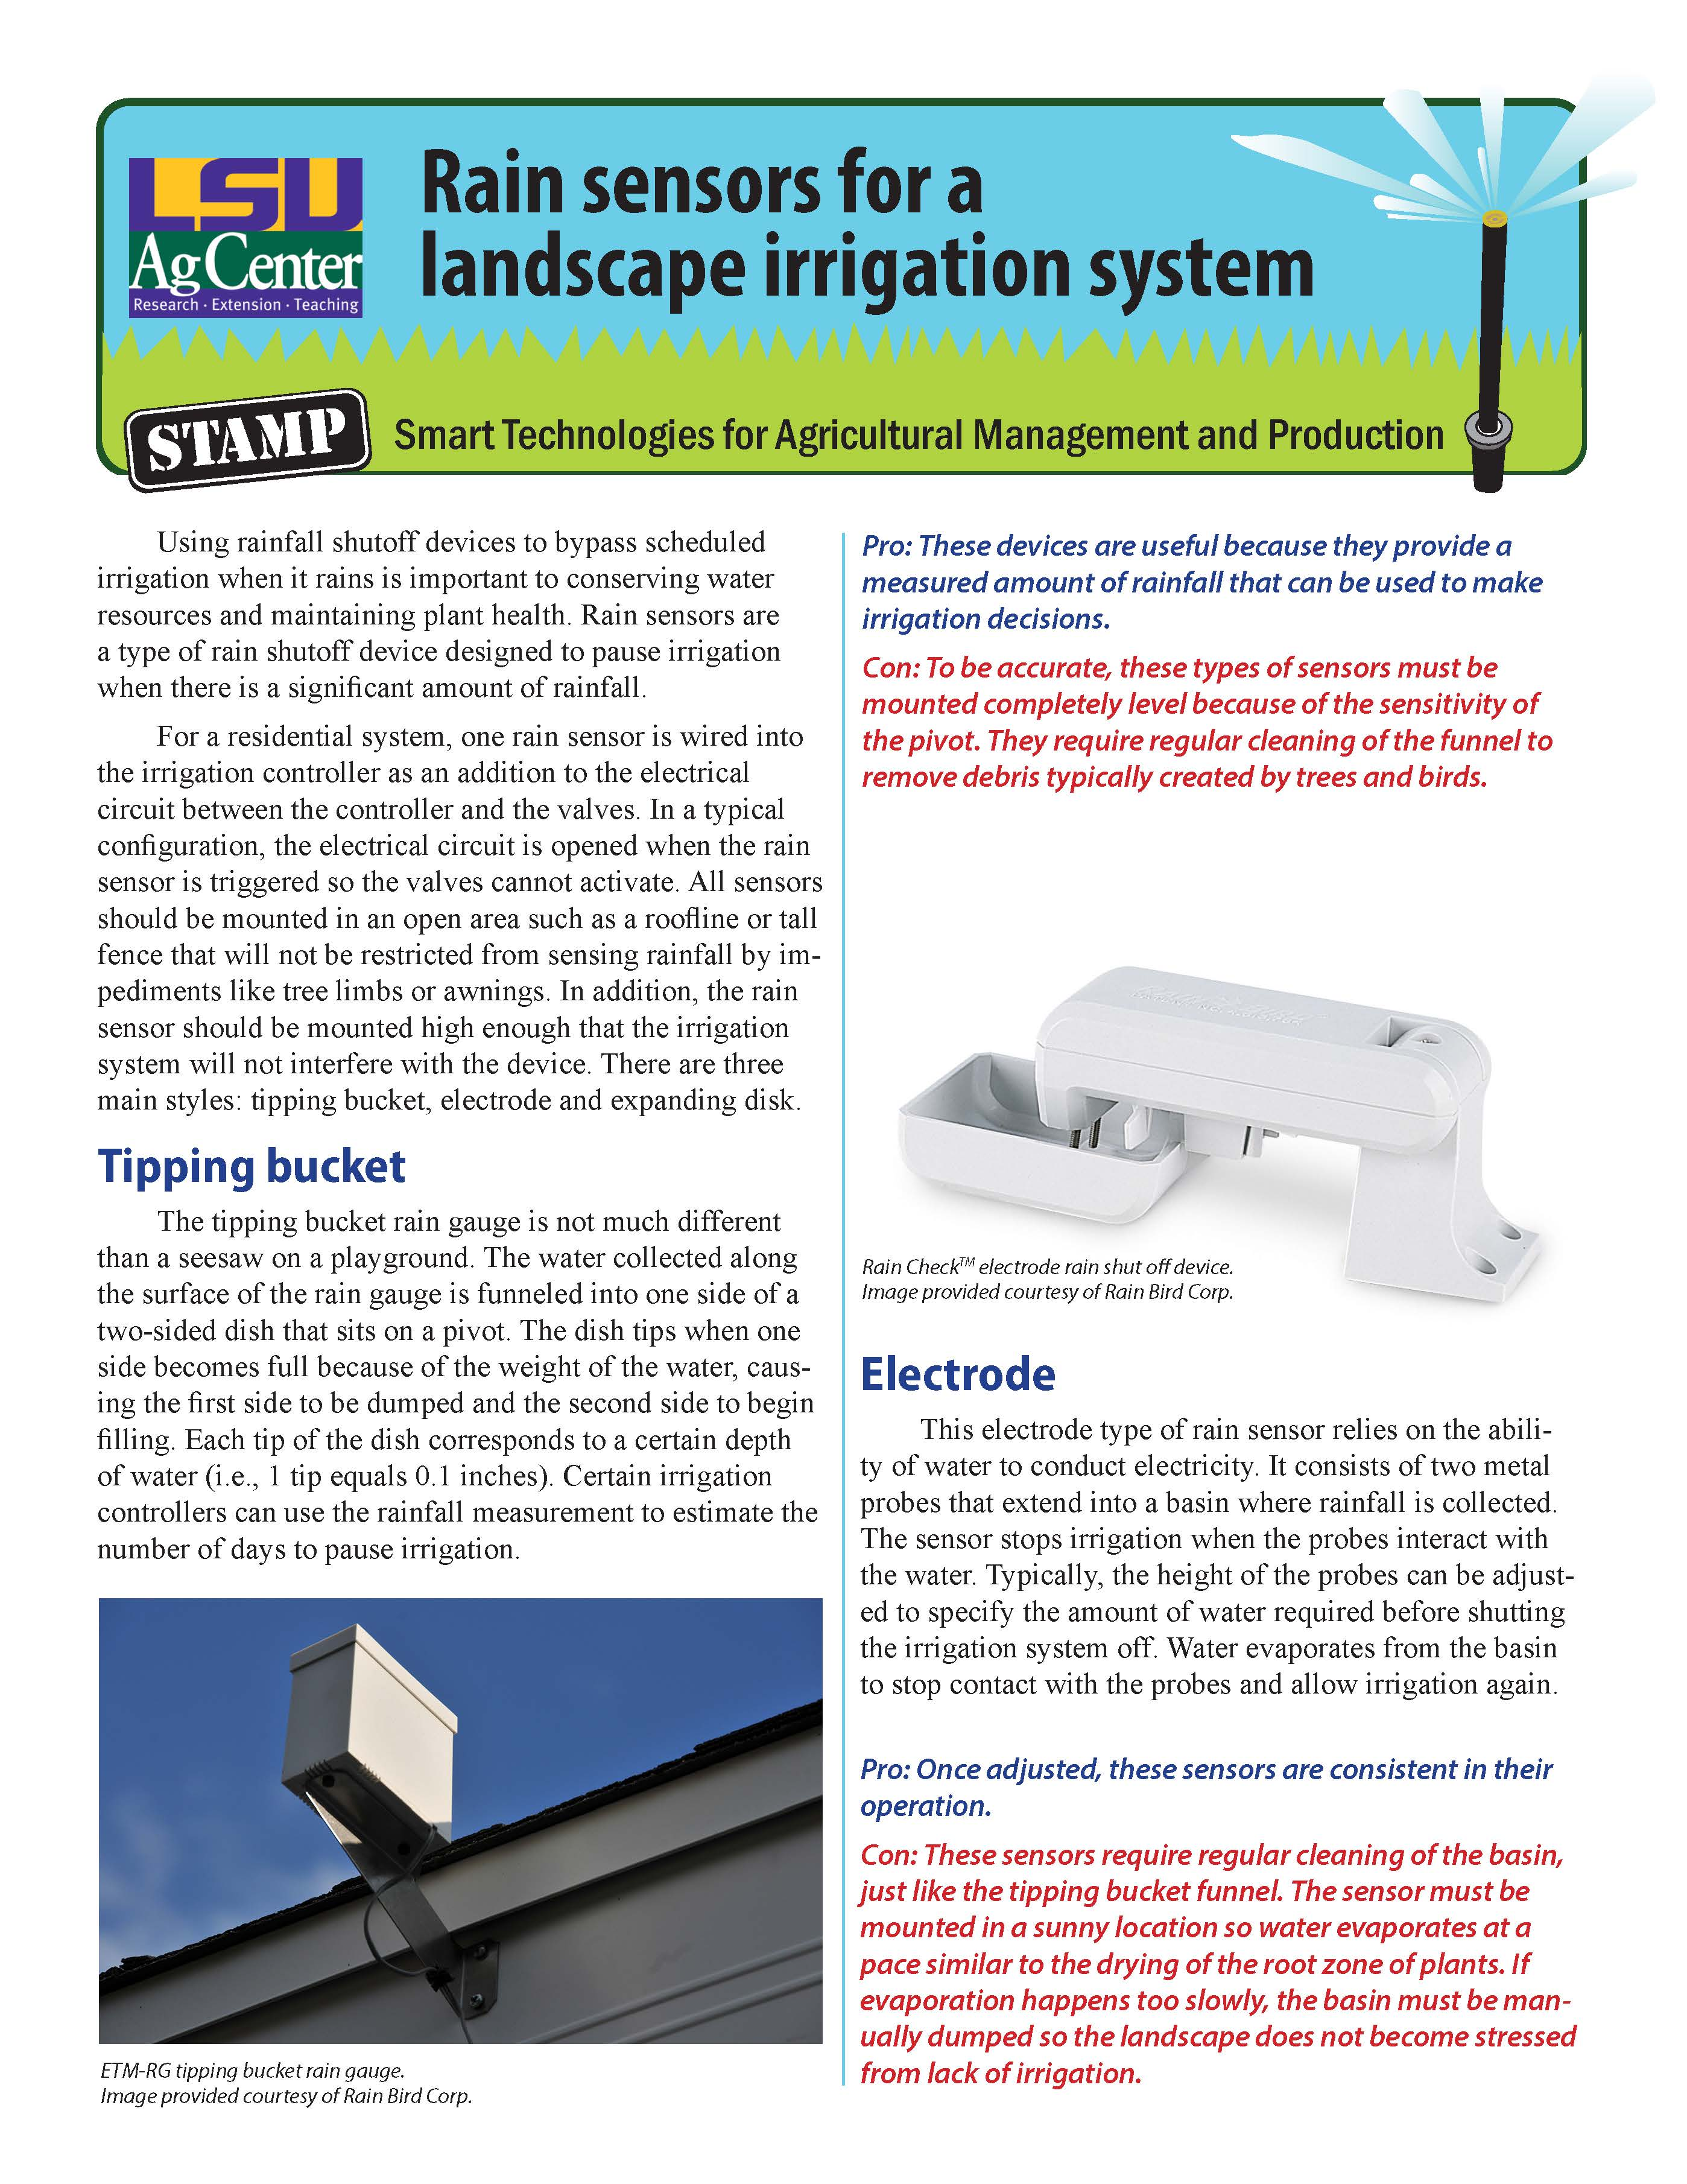 Rain sensors for a landscape irrigation system